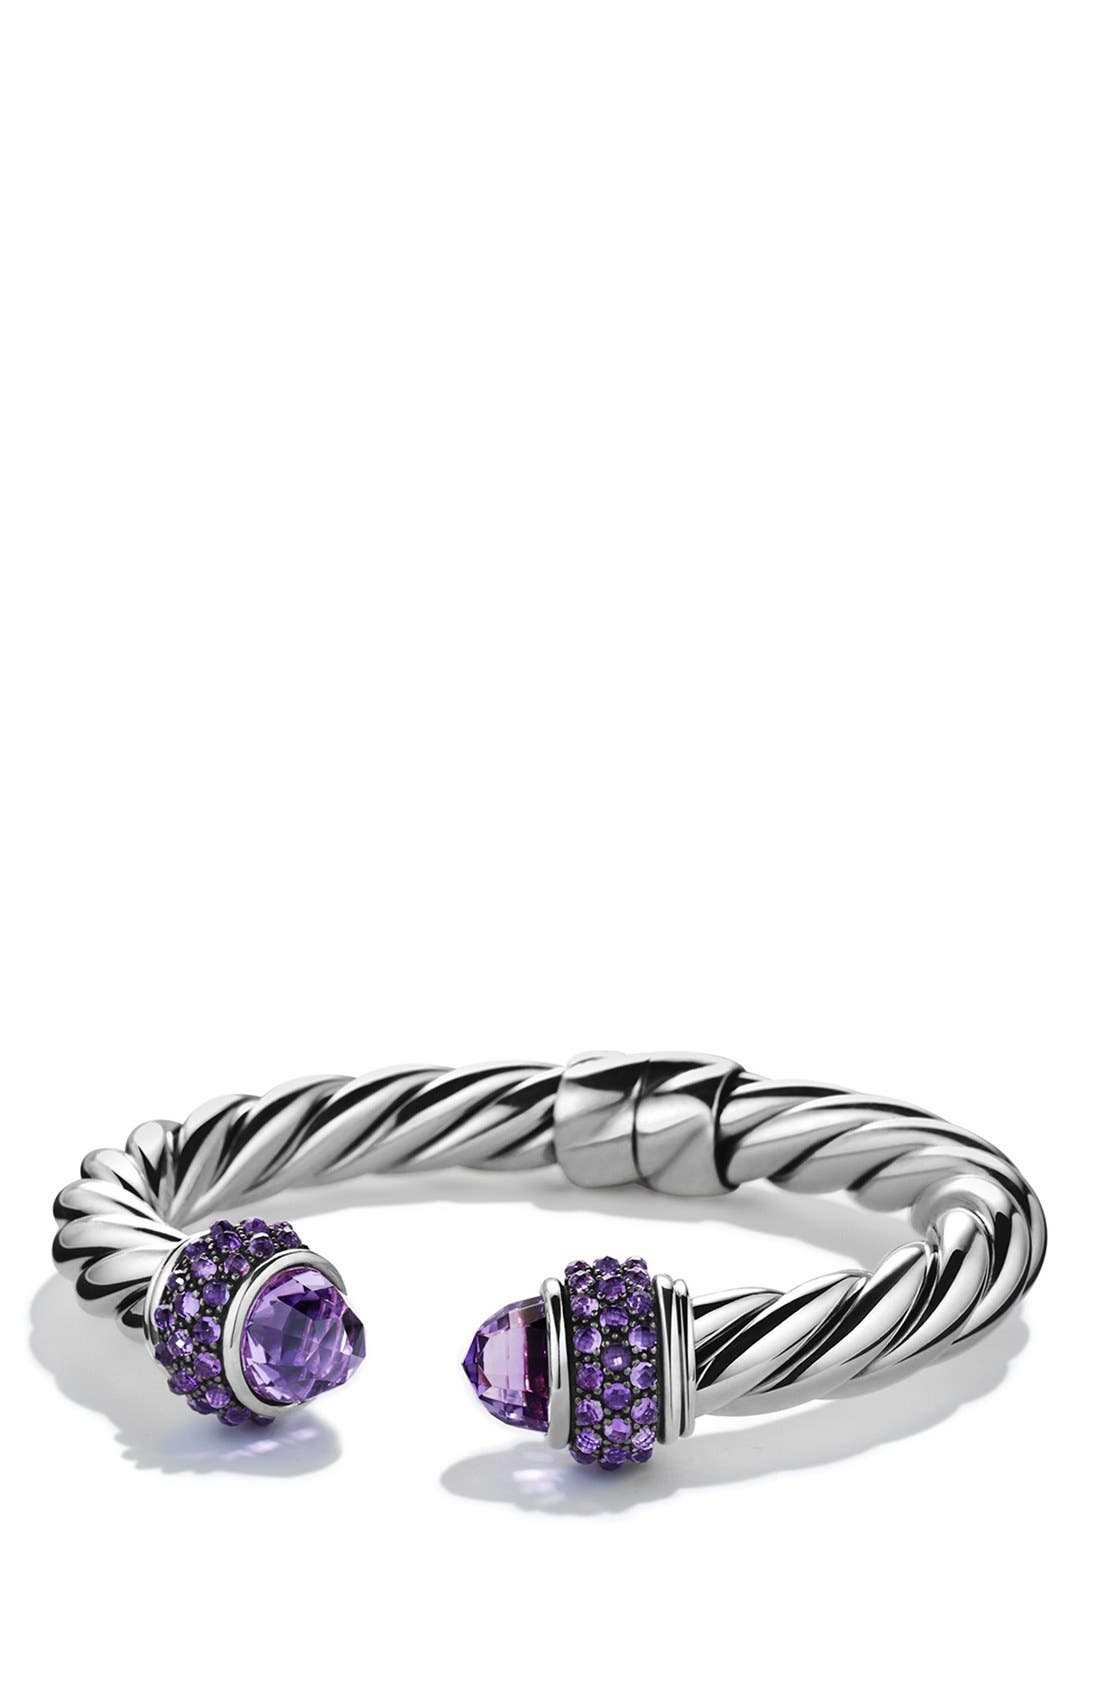 Main Image - David Yurman Bracelet with Semiprecious Stones